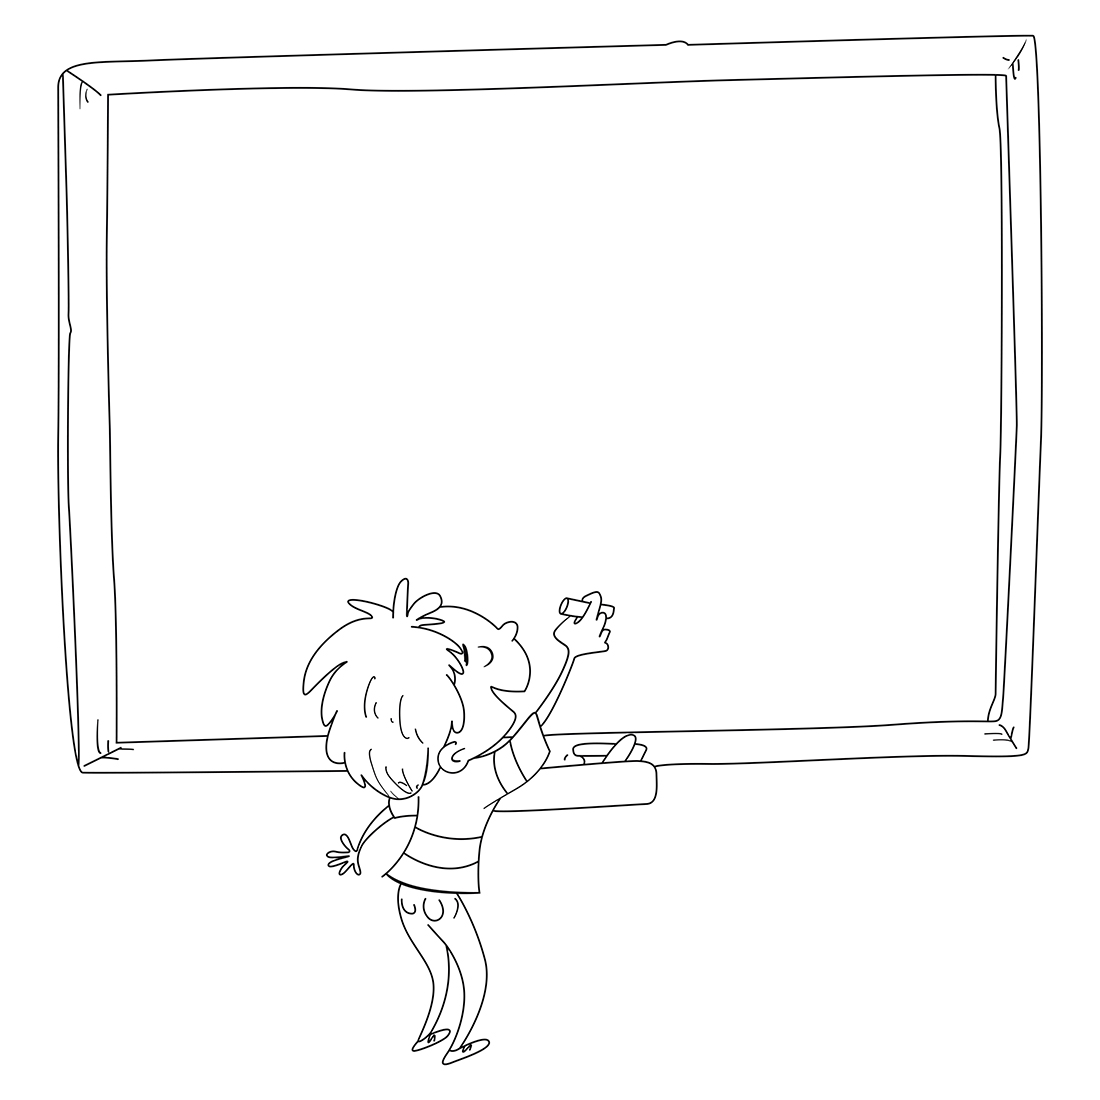 Boy writing on a blackboard in class. Coloring page